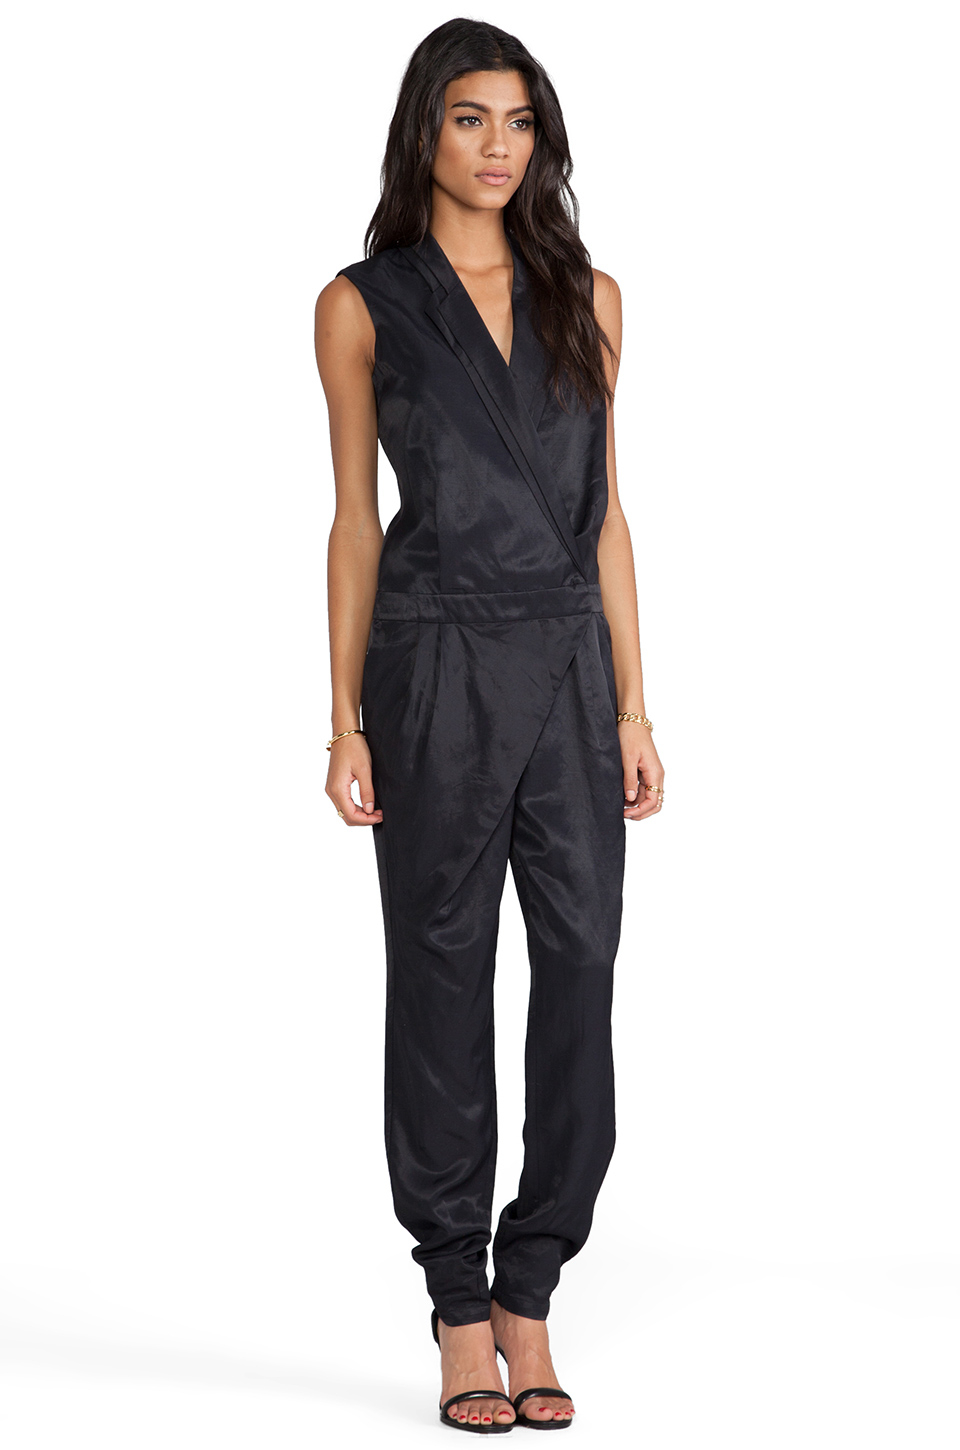 c meo collective riptide pantsuit in black lyst gallery